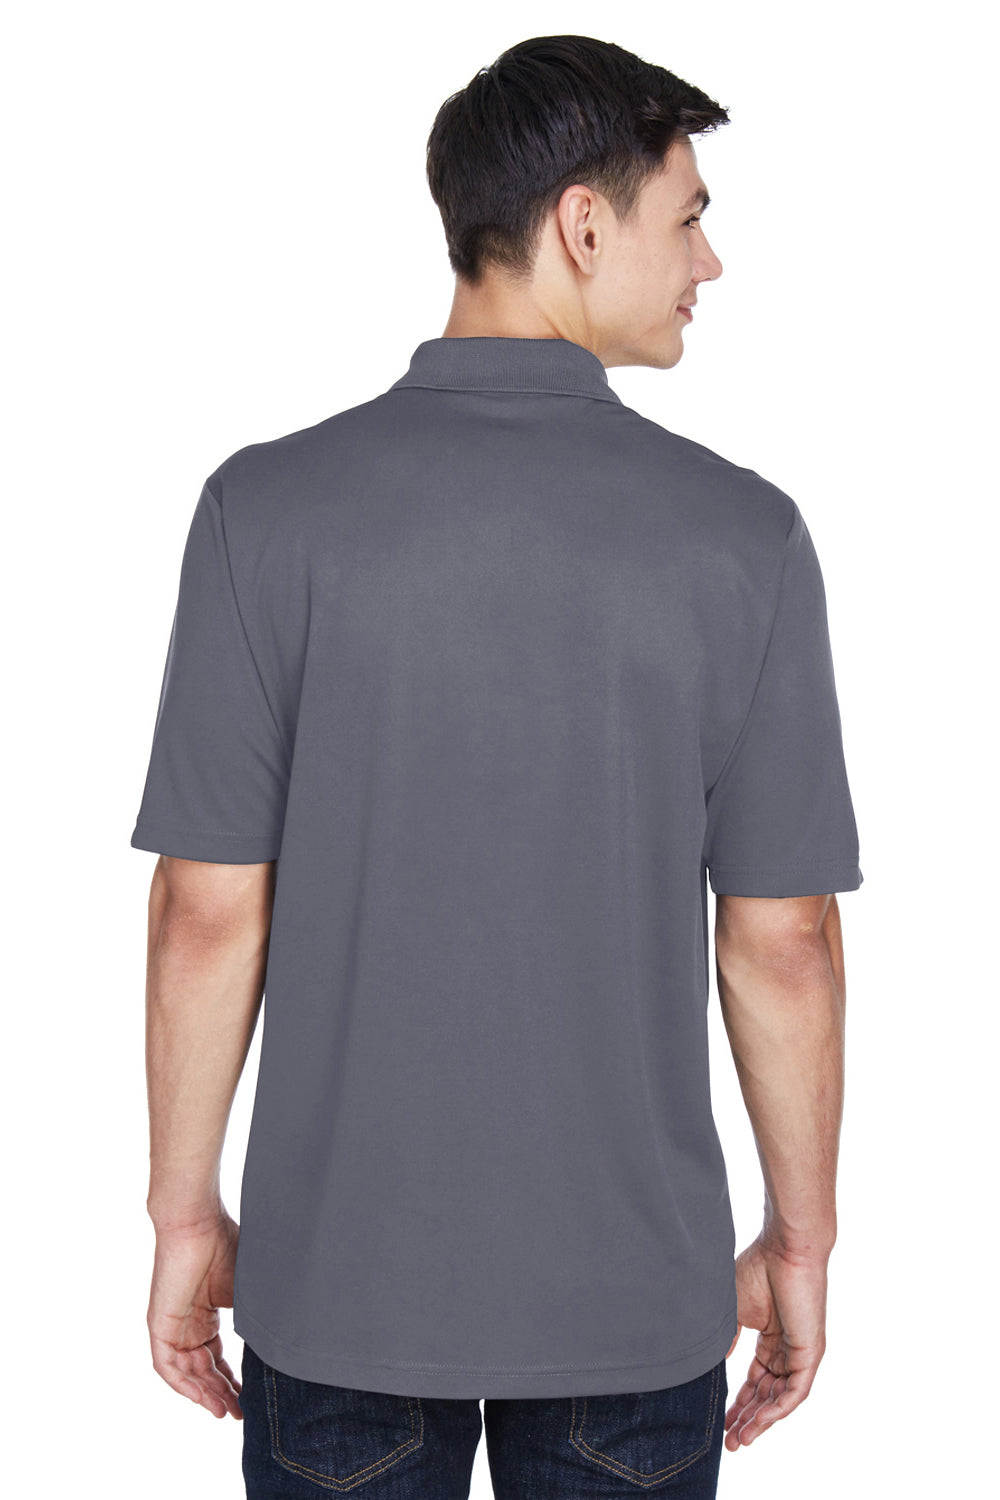 Core 365 CE101 Mens Balance Performance Moisture Wicking Short Sleeve Polo Shirt Black/Grey Back